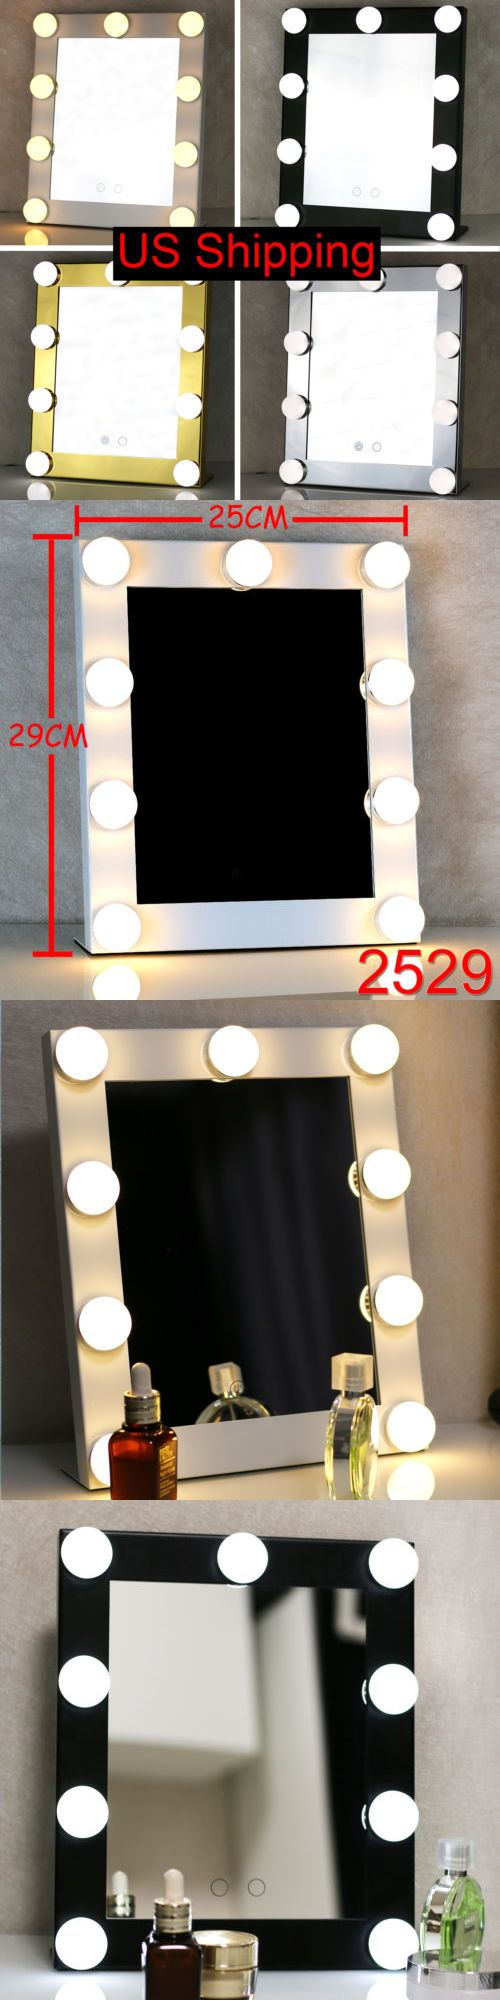 Makeup Mirrors: Vanity Lighted Hollywood Makeup Mirror With Lights Dimmer Stage Beauty Mirror BUY IT NOW ONLY: $49.68